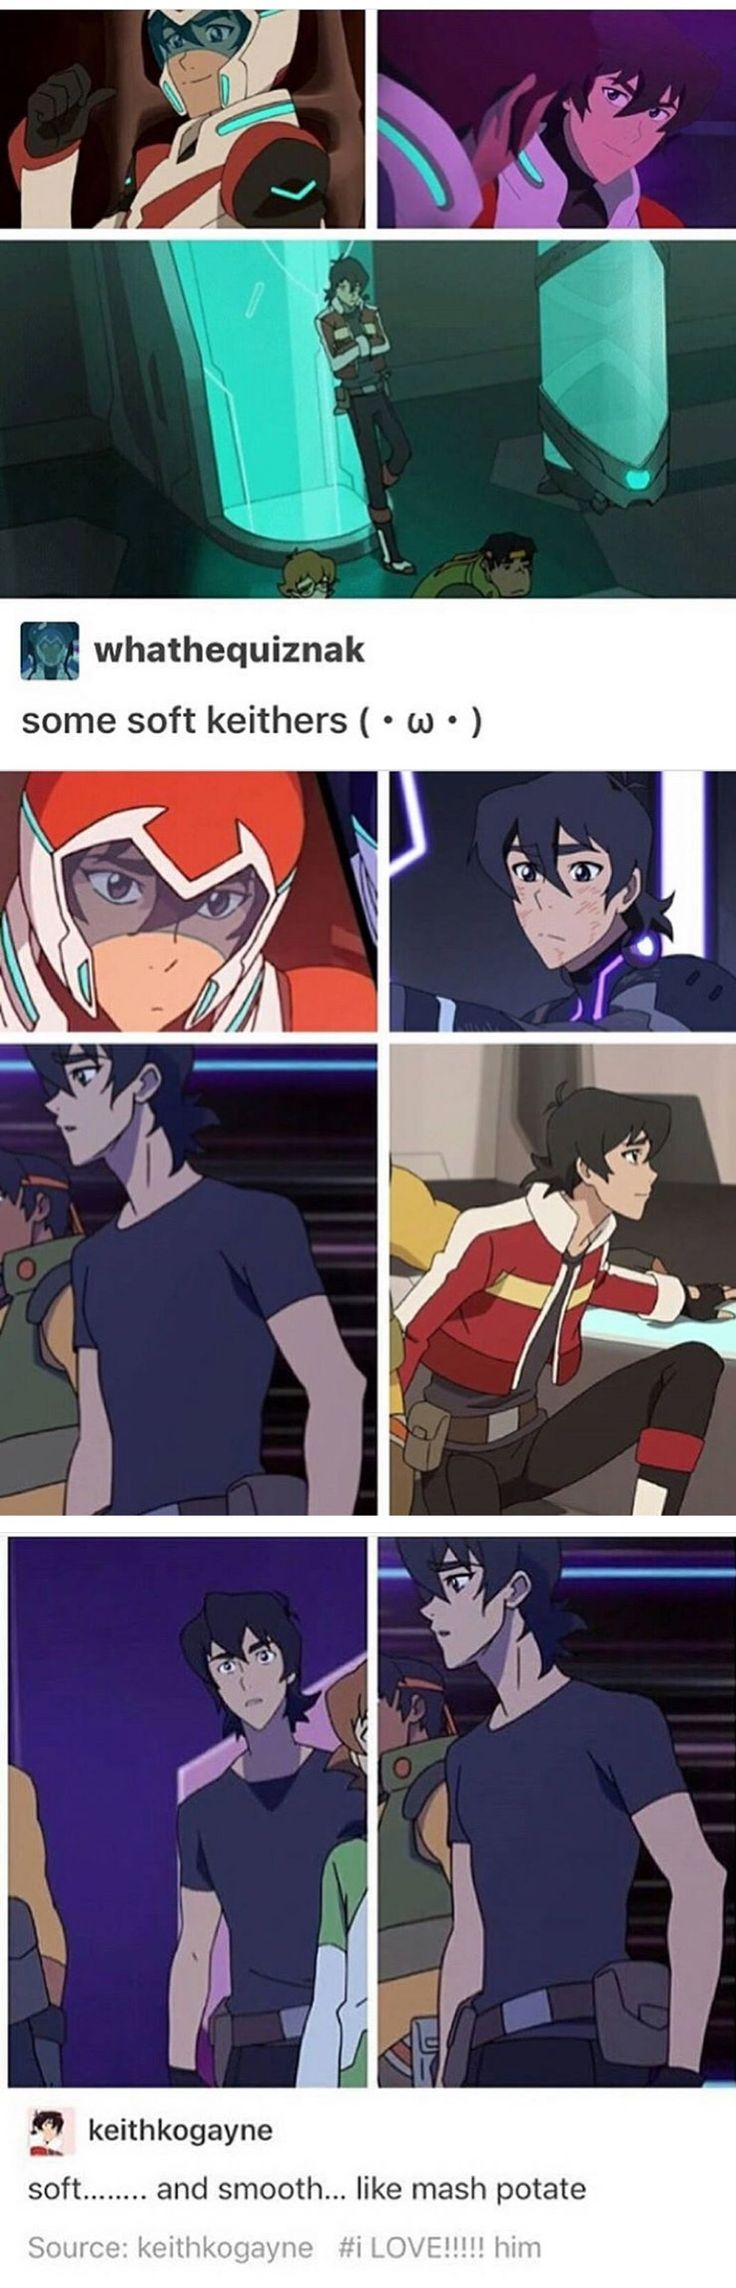 Some soft keithers<<omg I love Keith so much it's so unhealthy oh please help my soul